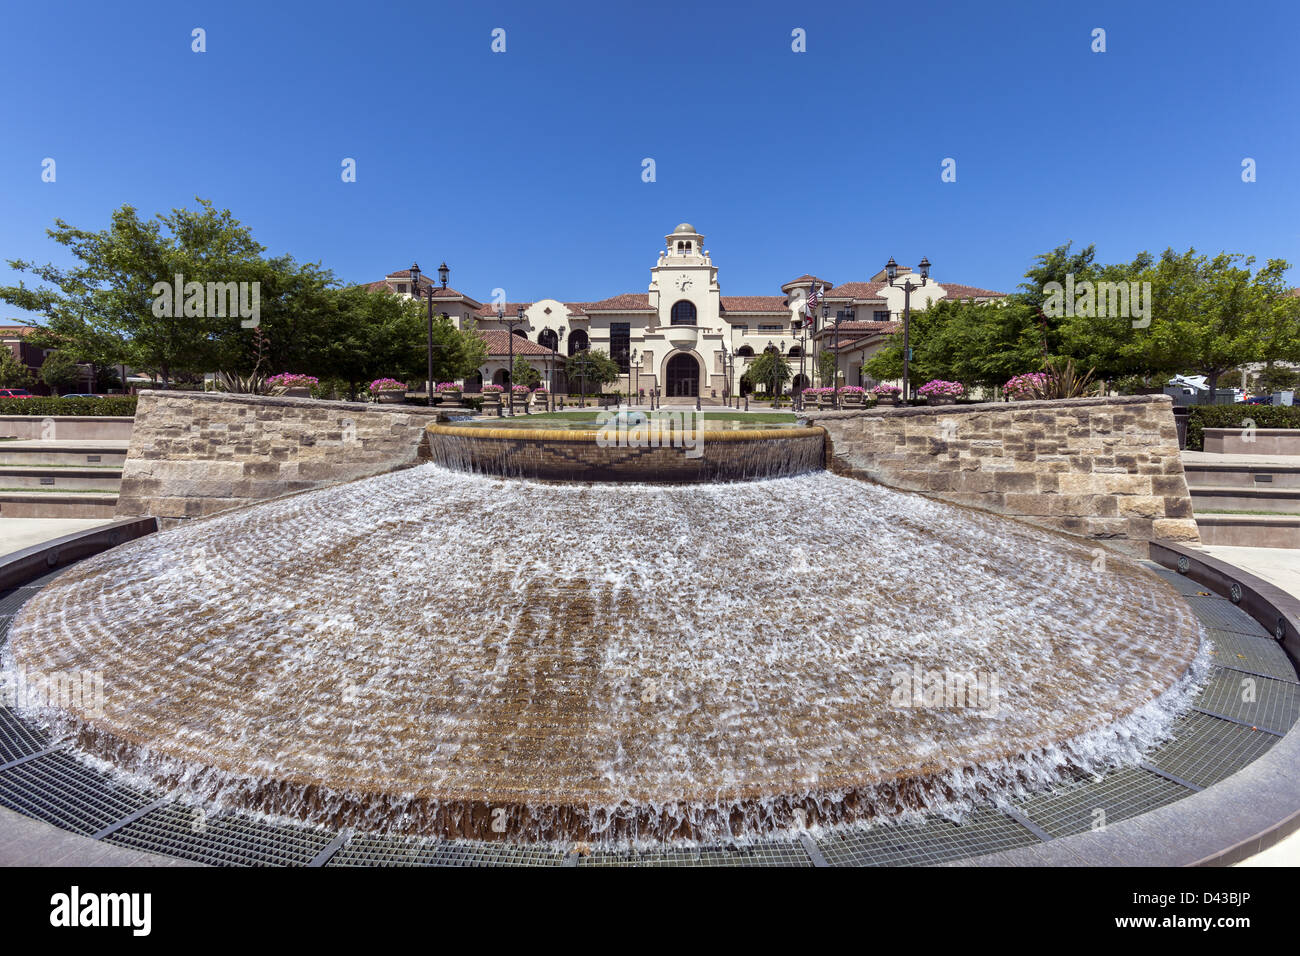 Plaza fountain fronting the new City Hall building in Temecula's Old Town Civic Center, Southern California USA - Stock Image